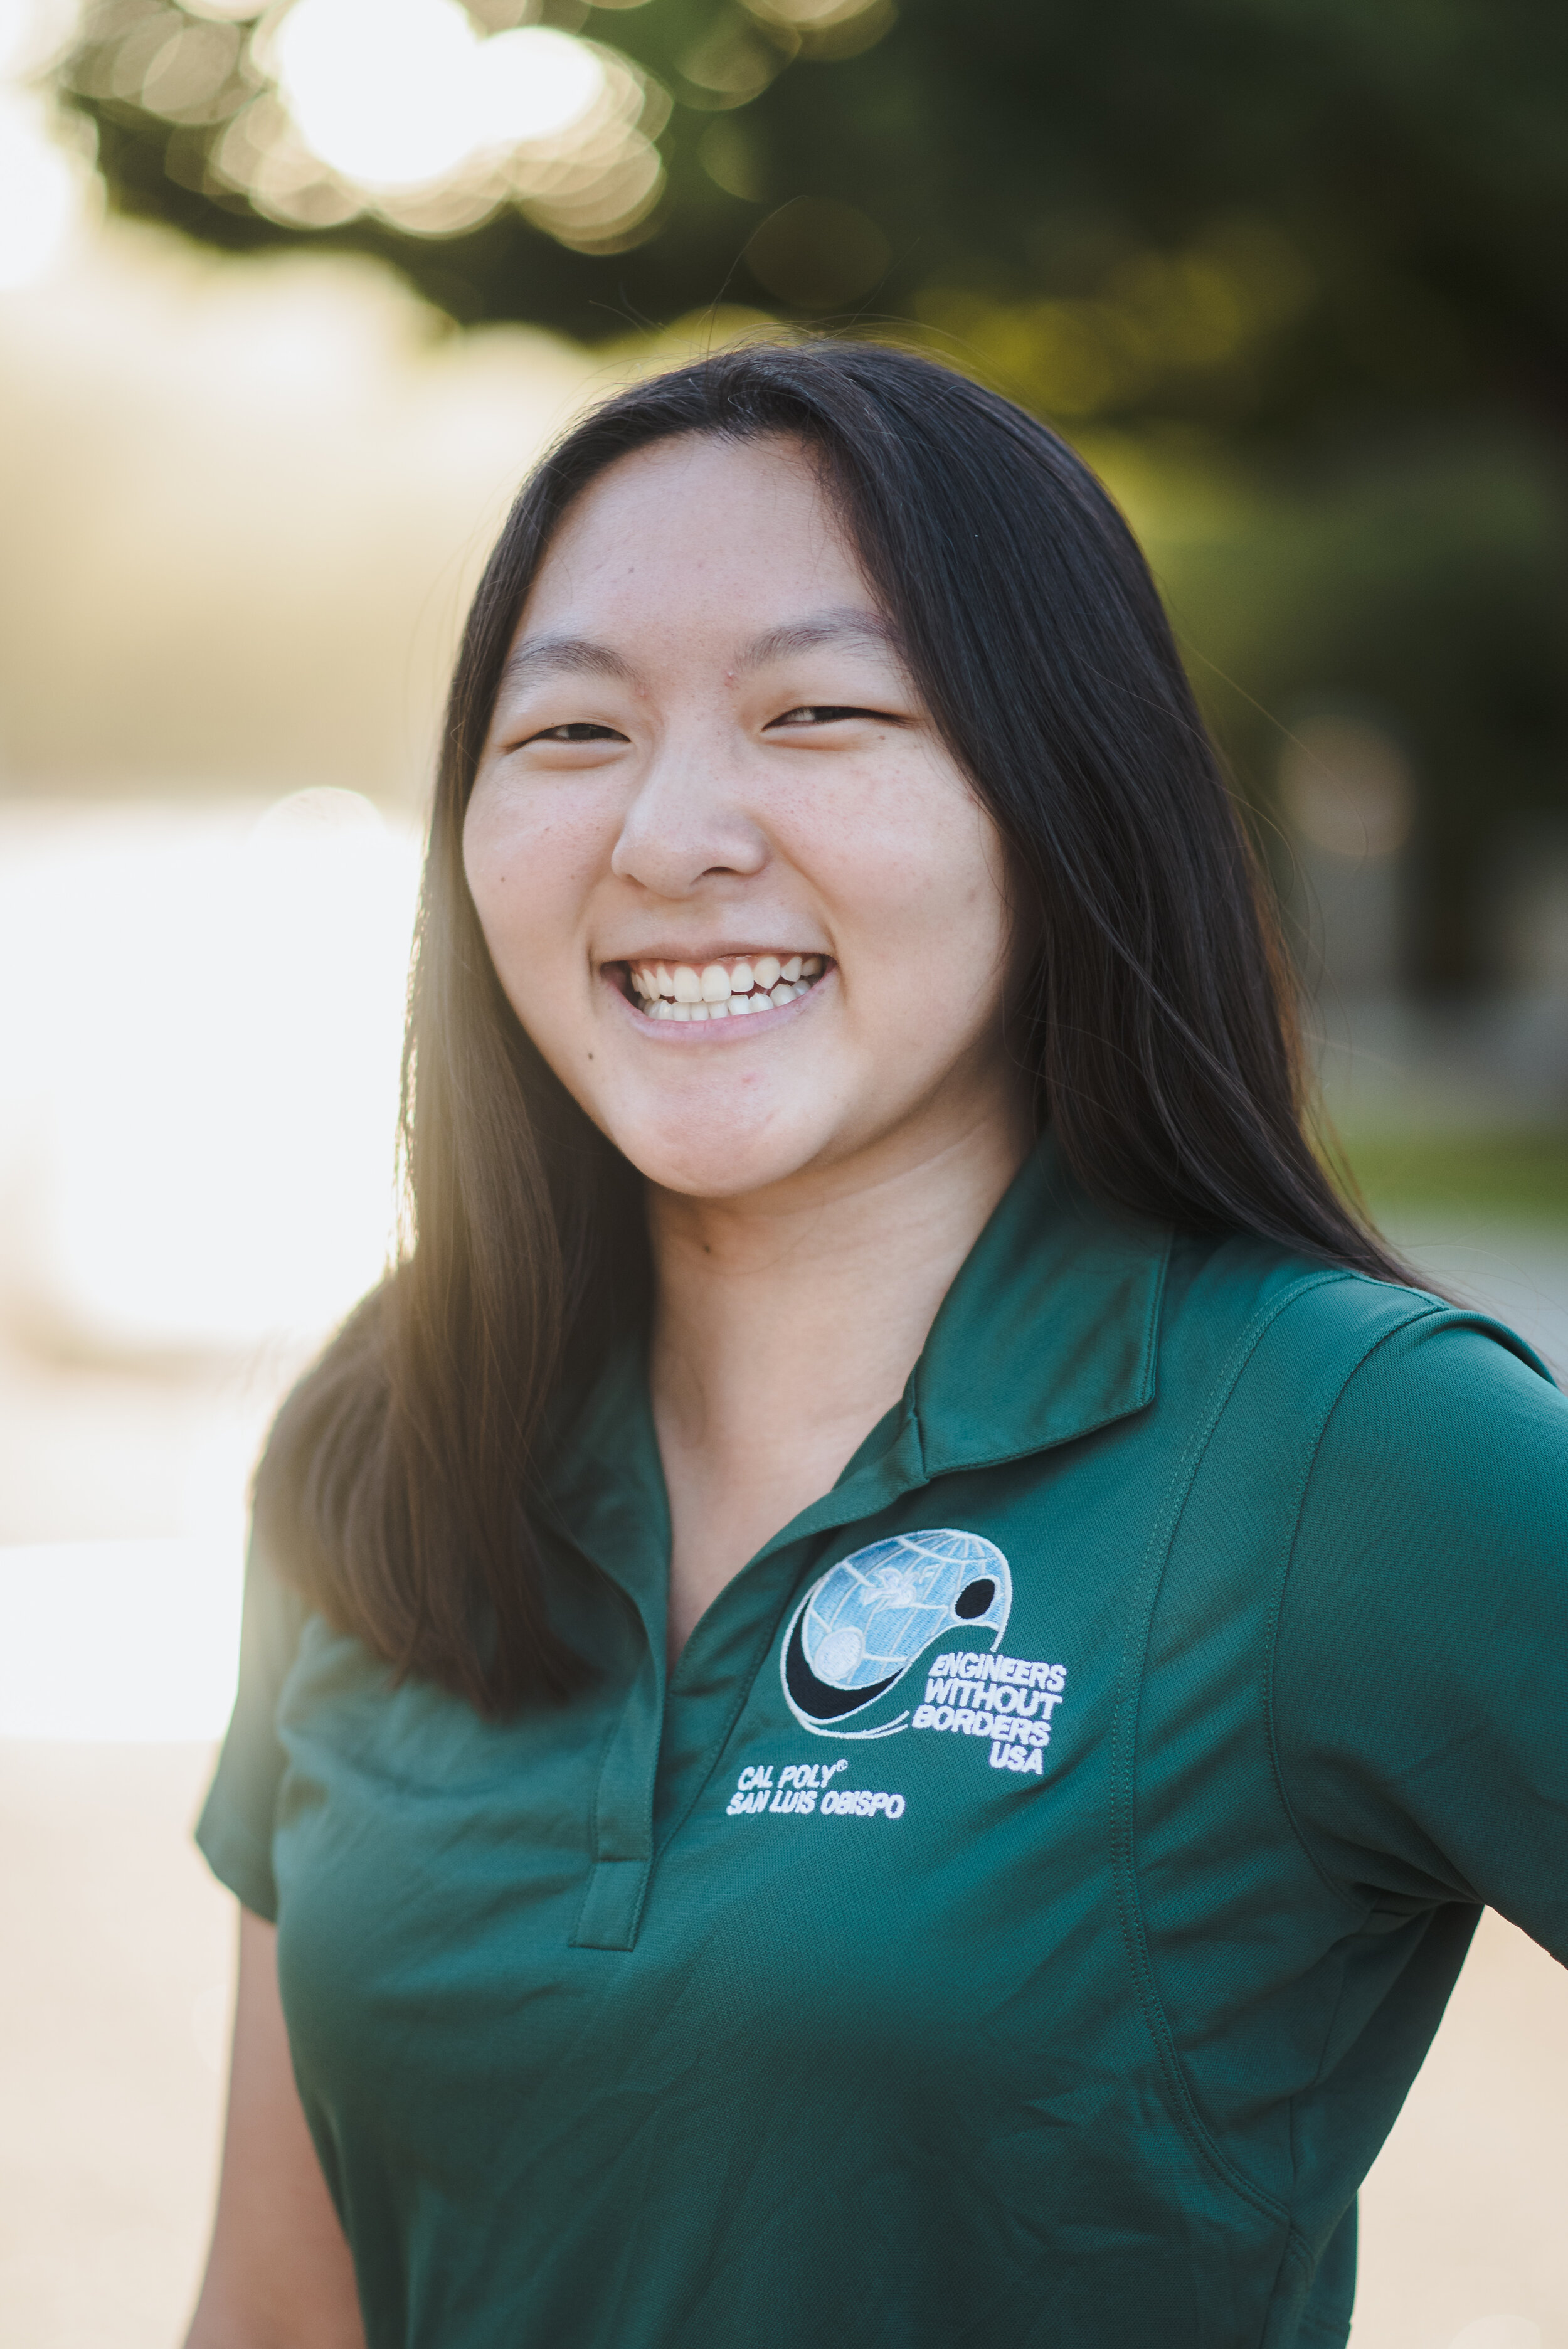 Ashley Masuda - Technology Coordinator    Grad 2021 - Computer Engineering   Ashley is a second year student from Oak Park, California. She joined EWB because she was interested in helping diverse communities with student-led engineering projects that would make a difference. Her favorite EWB memory is working and socializing with the Fiji Team during project meetings. Other hobbies of hers include basketball, piano, dance, drawing, and making games.